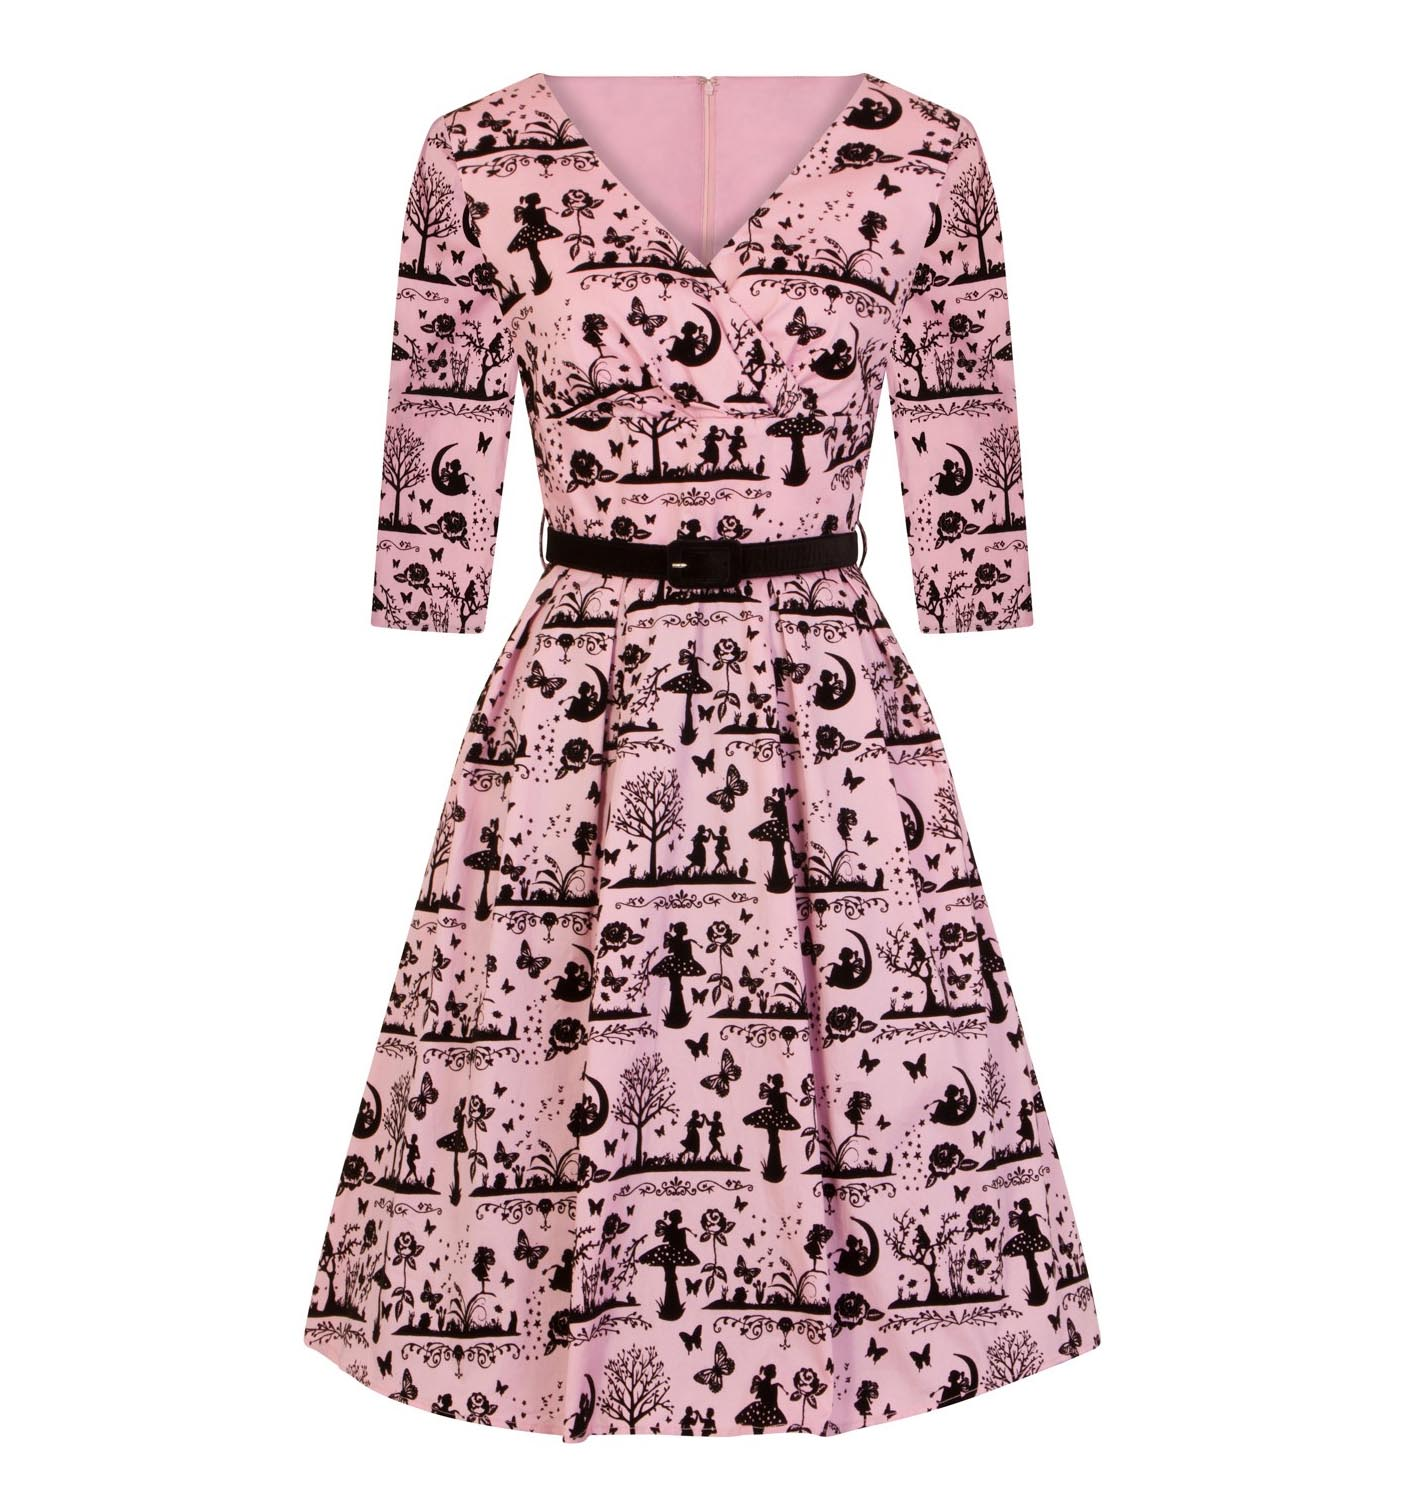 Hell-Bunny-40s-50s-Pin-Up-Dress-Fairy-Butterfly-ANDERSON-Black-Pink-All-Sizes thumbnail 7